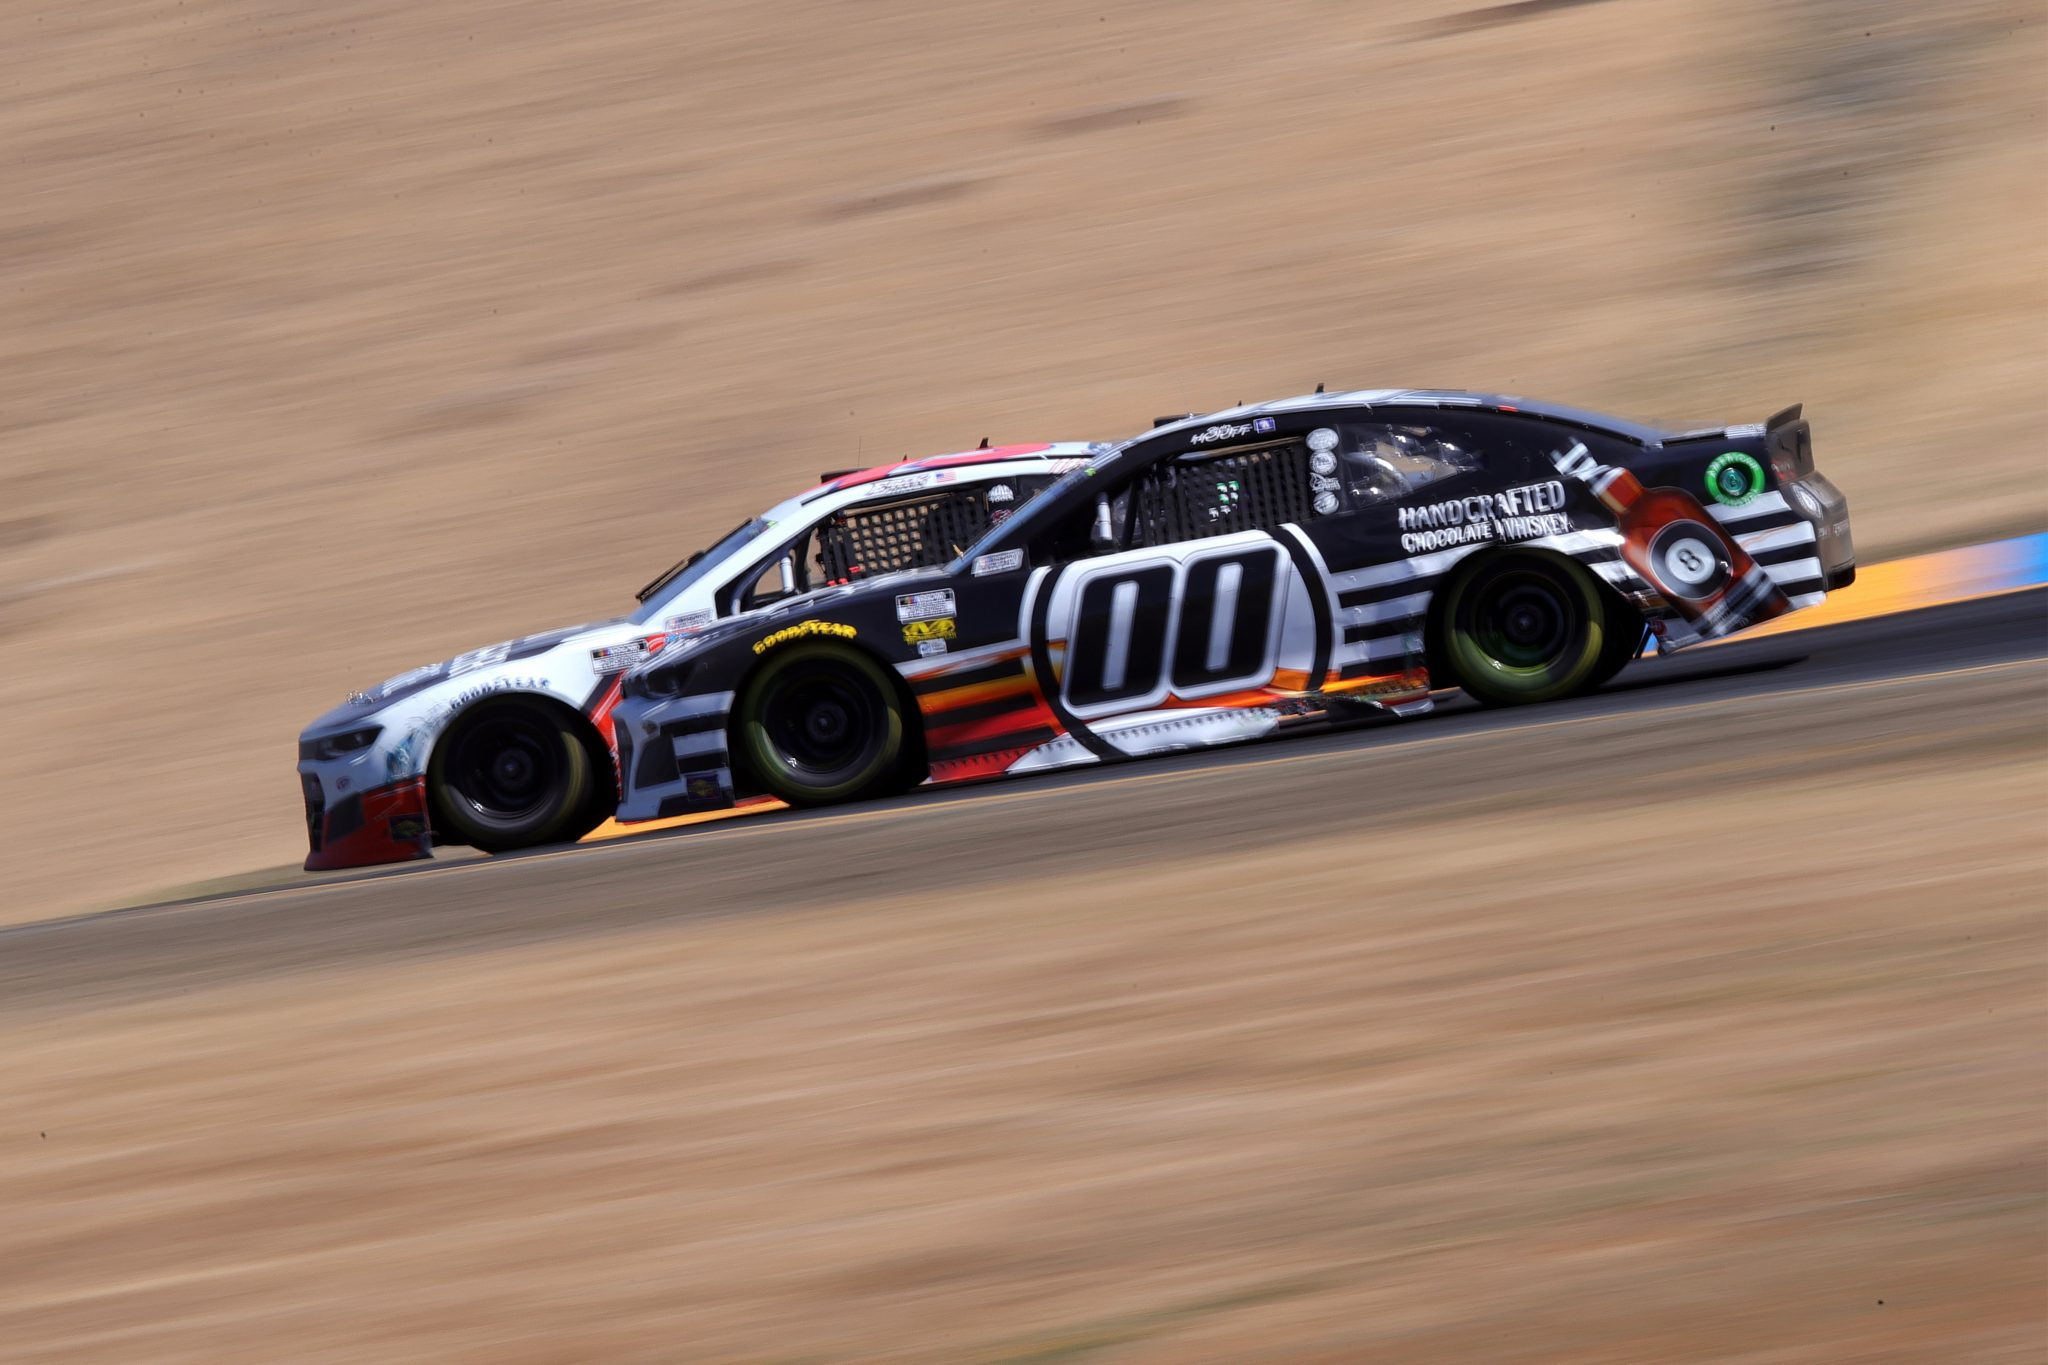 SONOMA, CALIFORNIA - JUNE 06: Quin Houff, driver of the #00 8 Ball Chocolate Whiskey Chevrolet, drives during the NASCAR Cup Series Toyota/Save Mart 350 at Sonoma Raceway on June 06, 2021 in Sonoma, California. (Photo by Carmen Mandato/Getty Images) | Getty Images